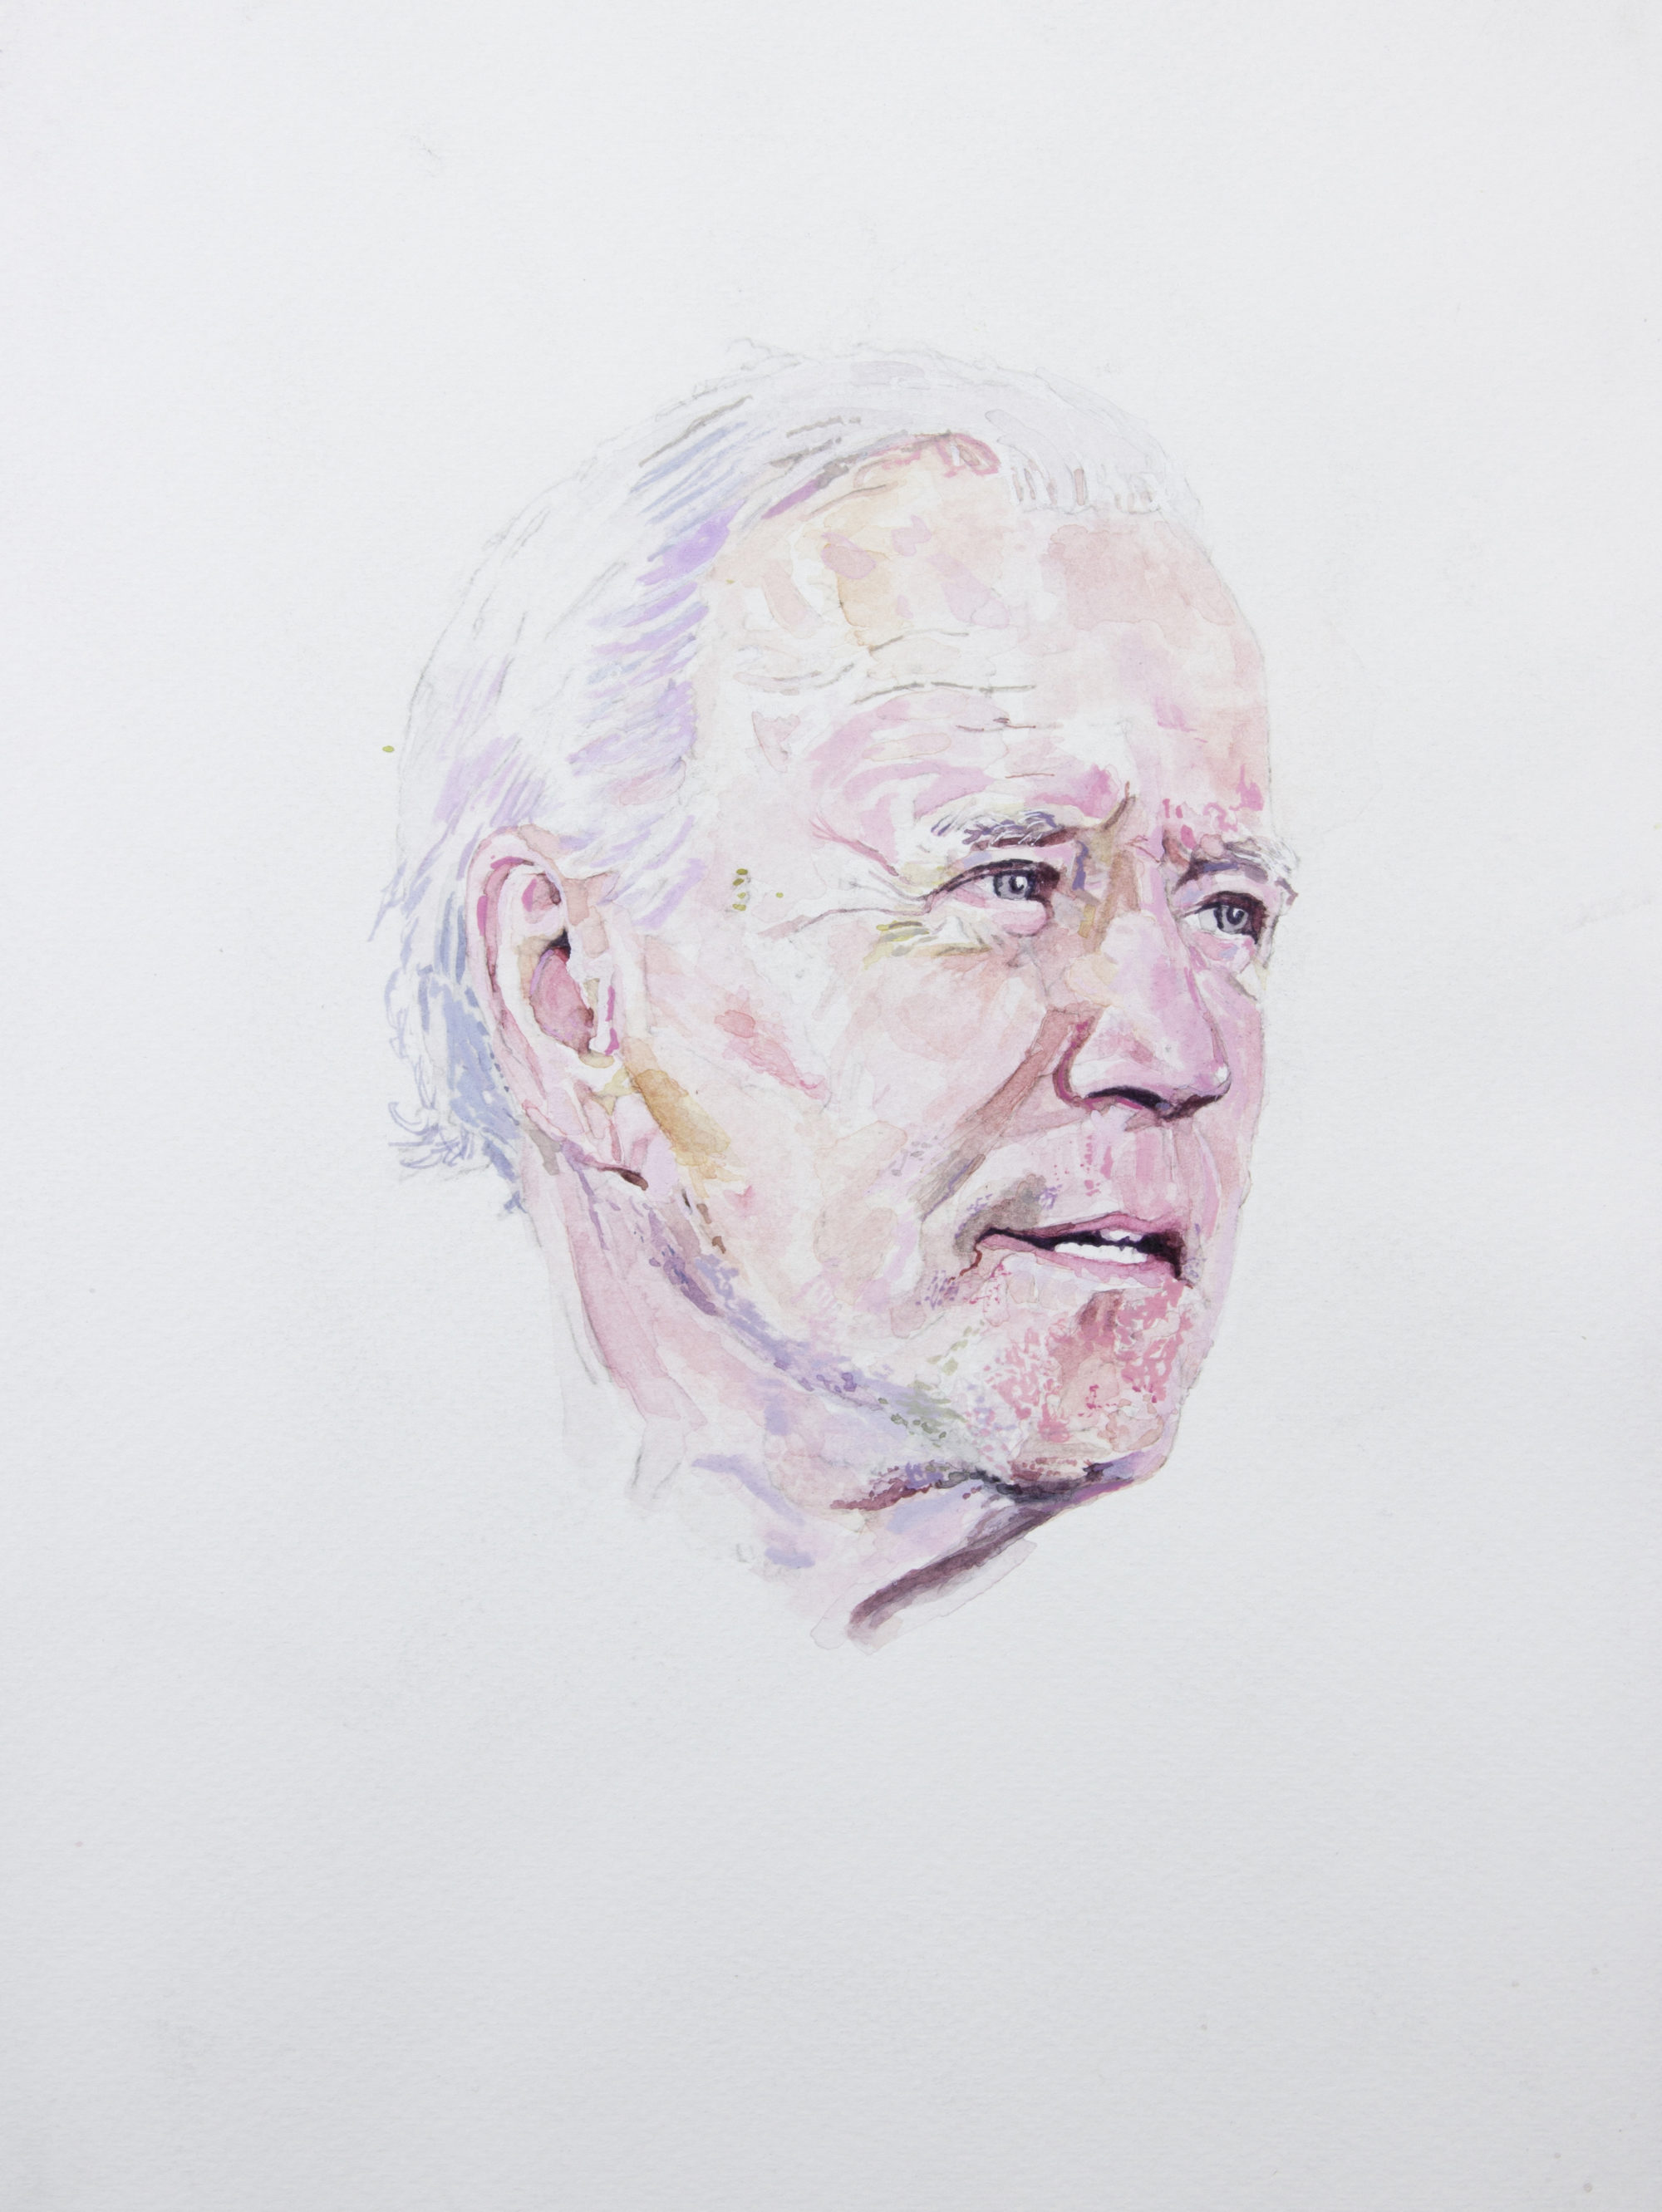 Watercolor portrait of Joe Biden.